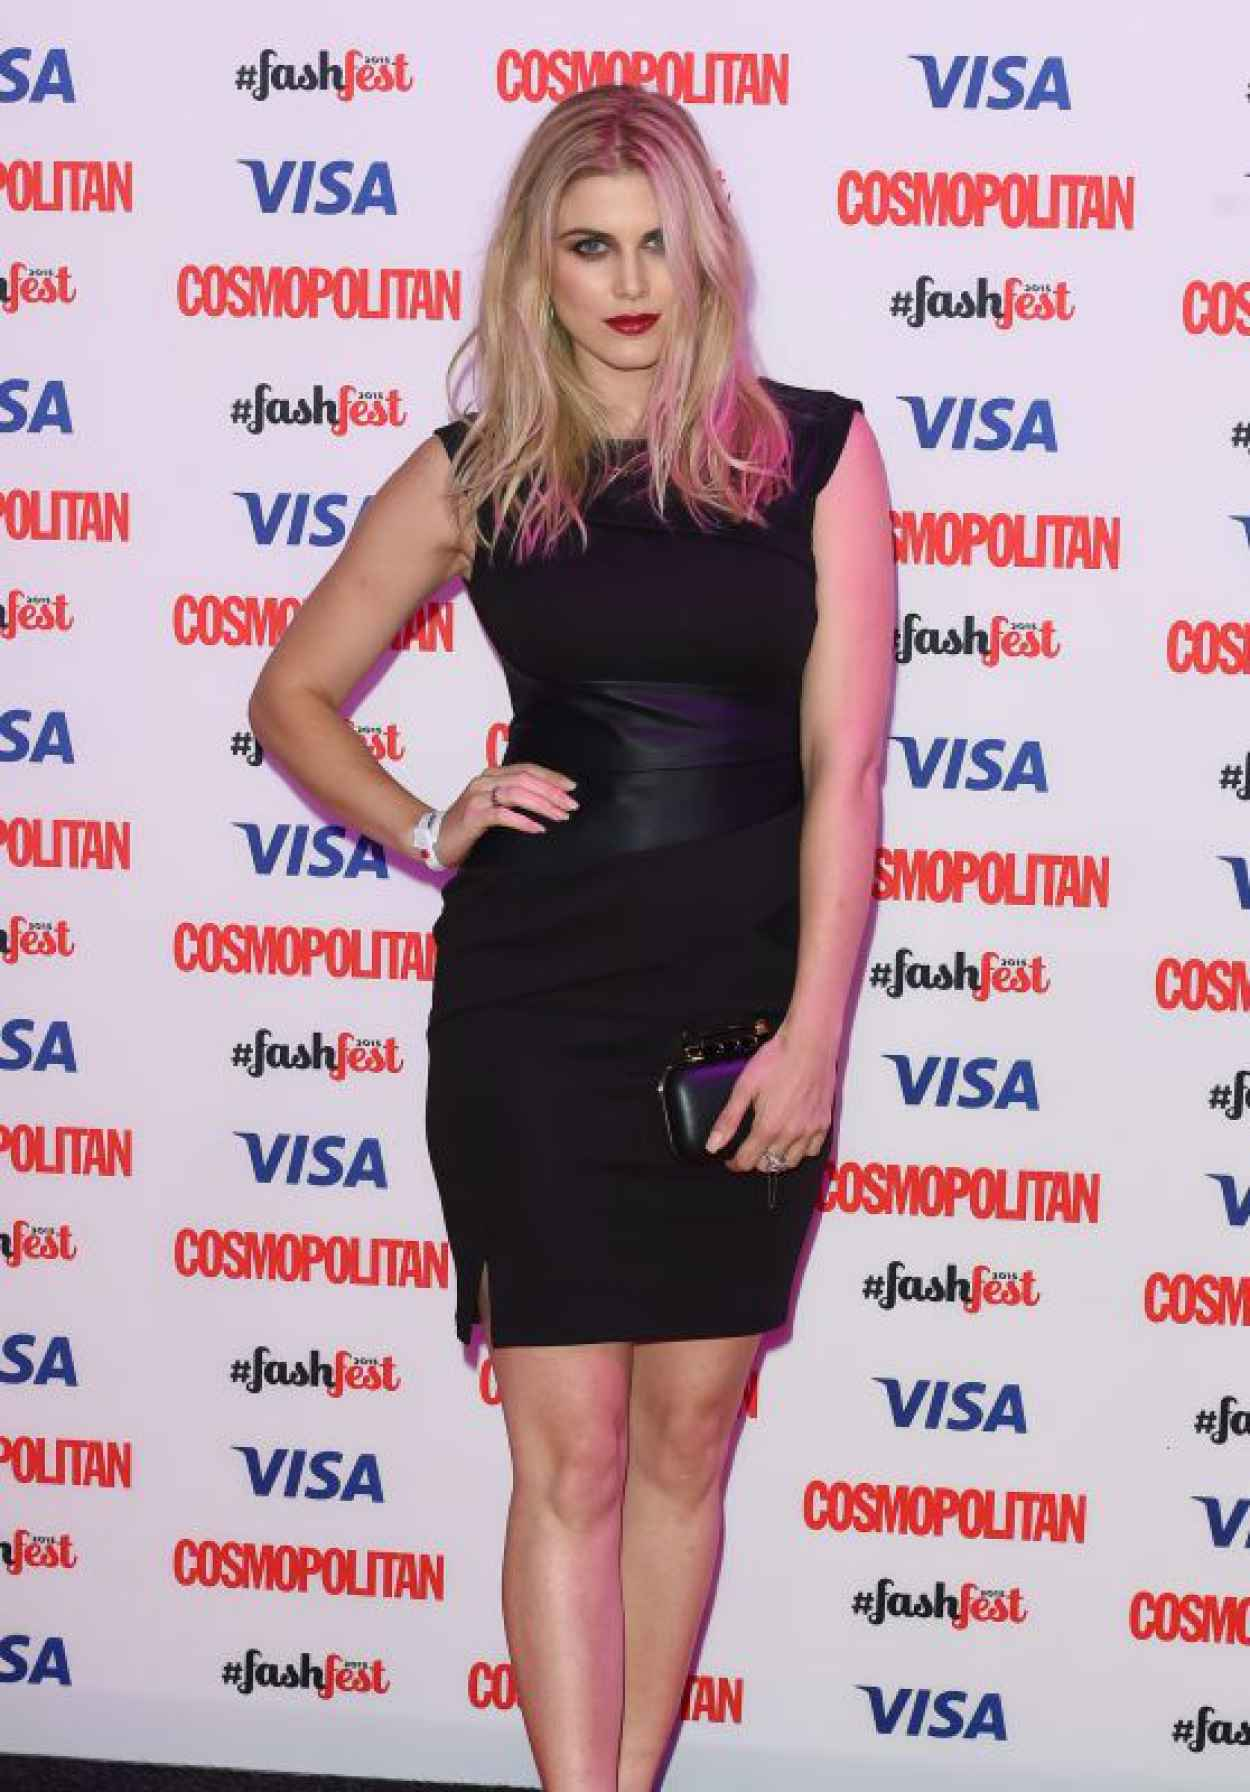 Ashley James - 2015 Cosmopolitan FashFest in London-1